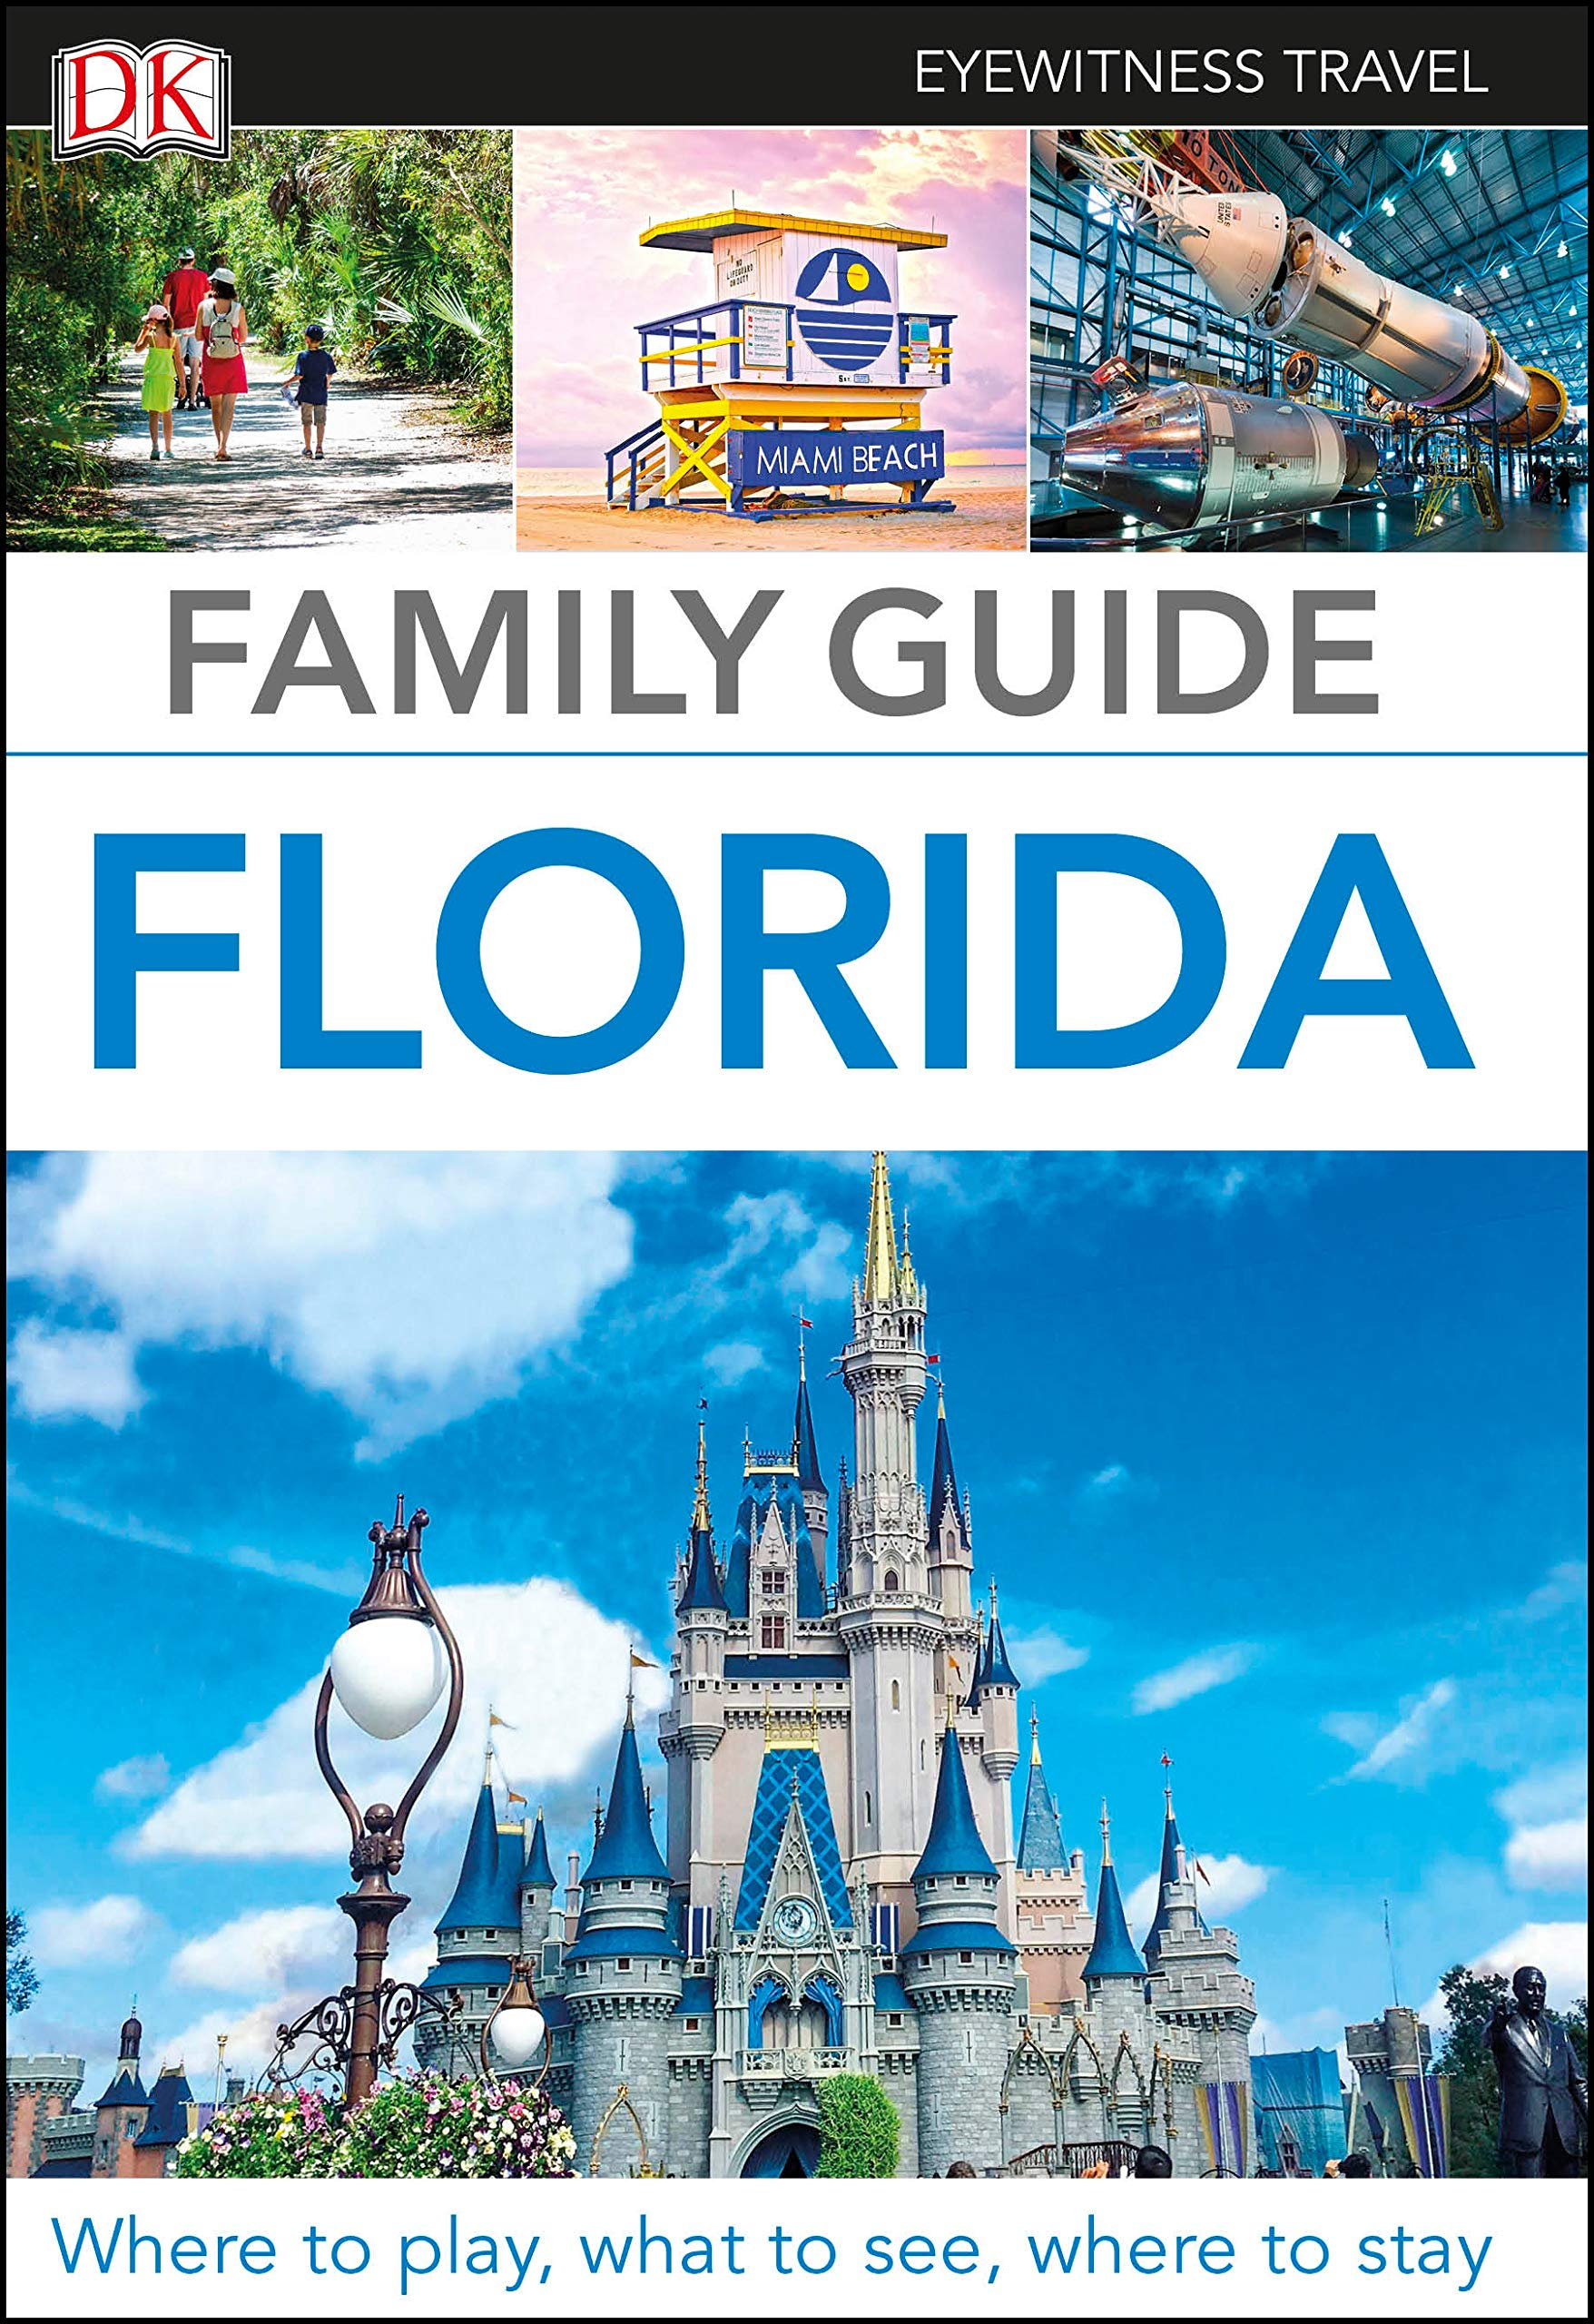 Family Guide Florida  DK Eyewitness Travel Guide